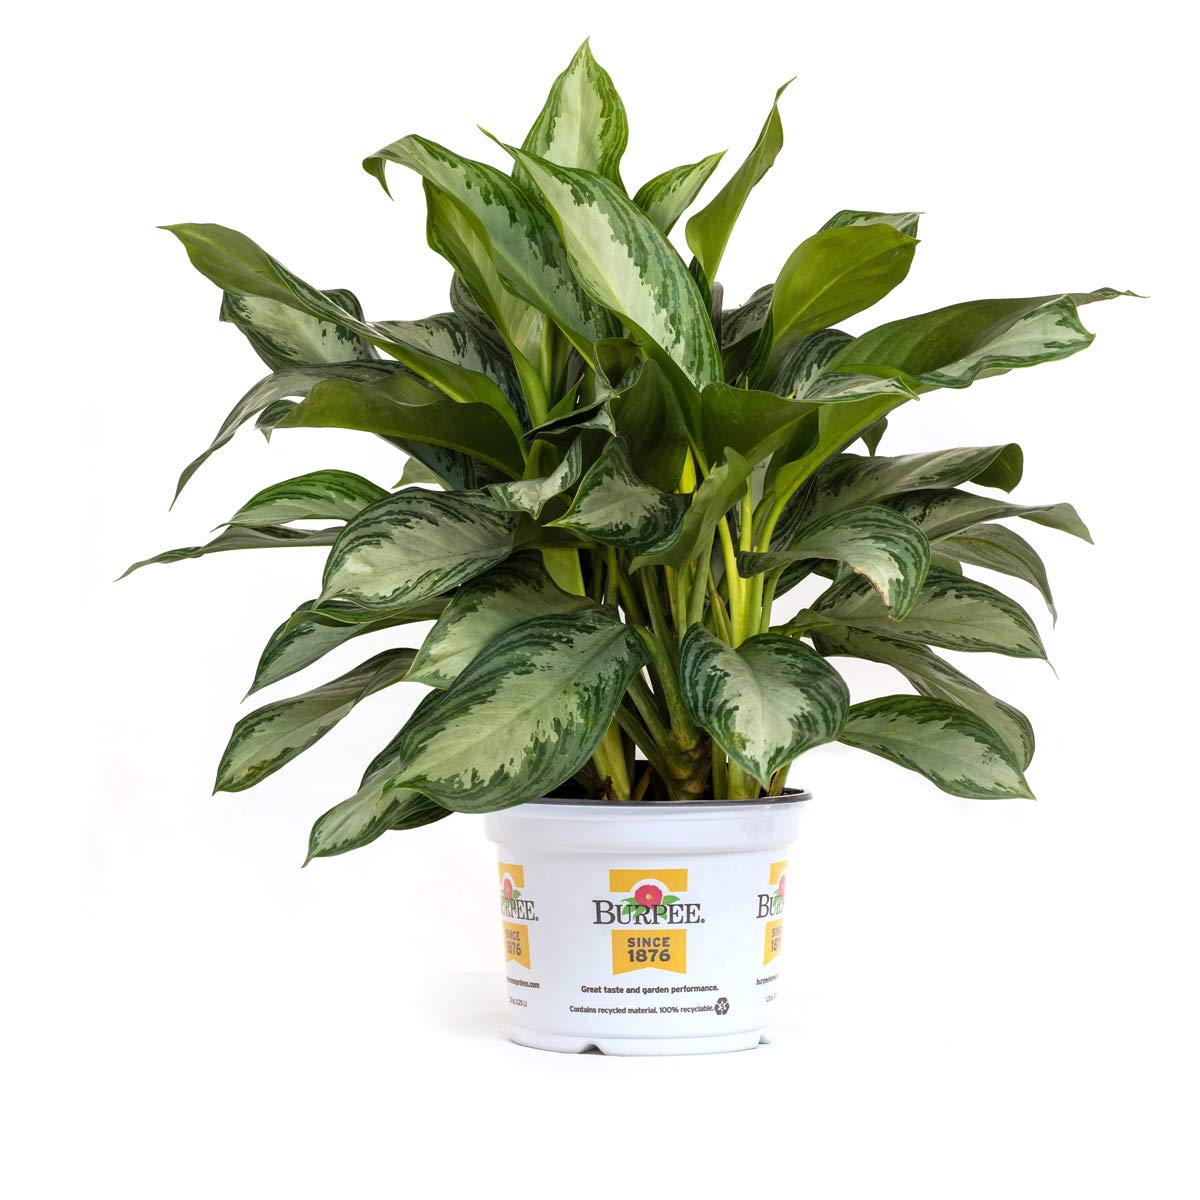 Burpee Agloanema Silver Bay |Indirect Medium Light | Live Easy Care Indoor House Plant, 6'' Pot by Burpee